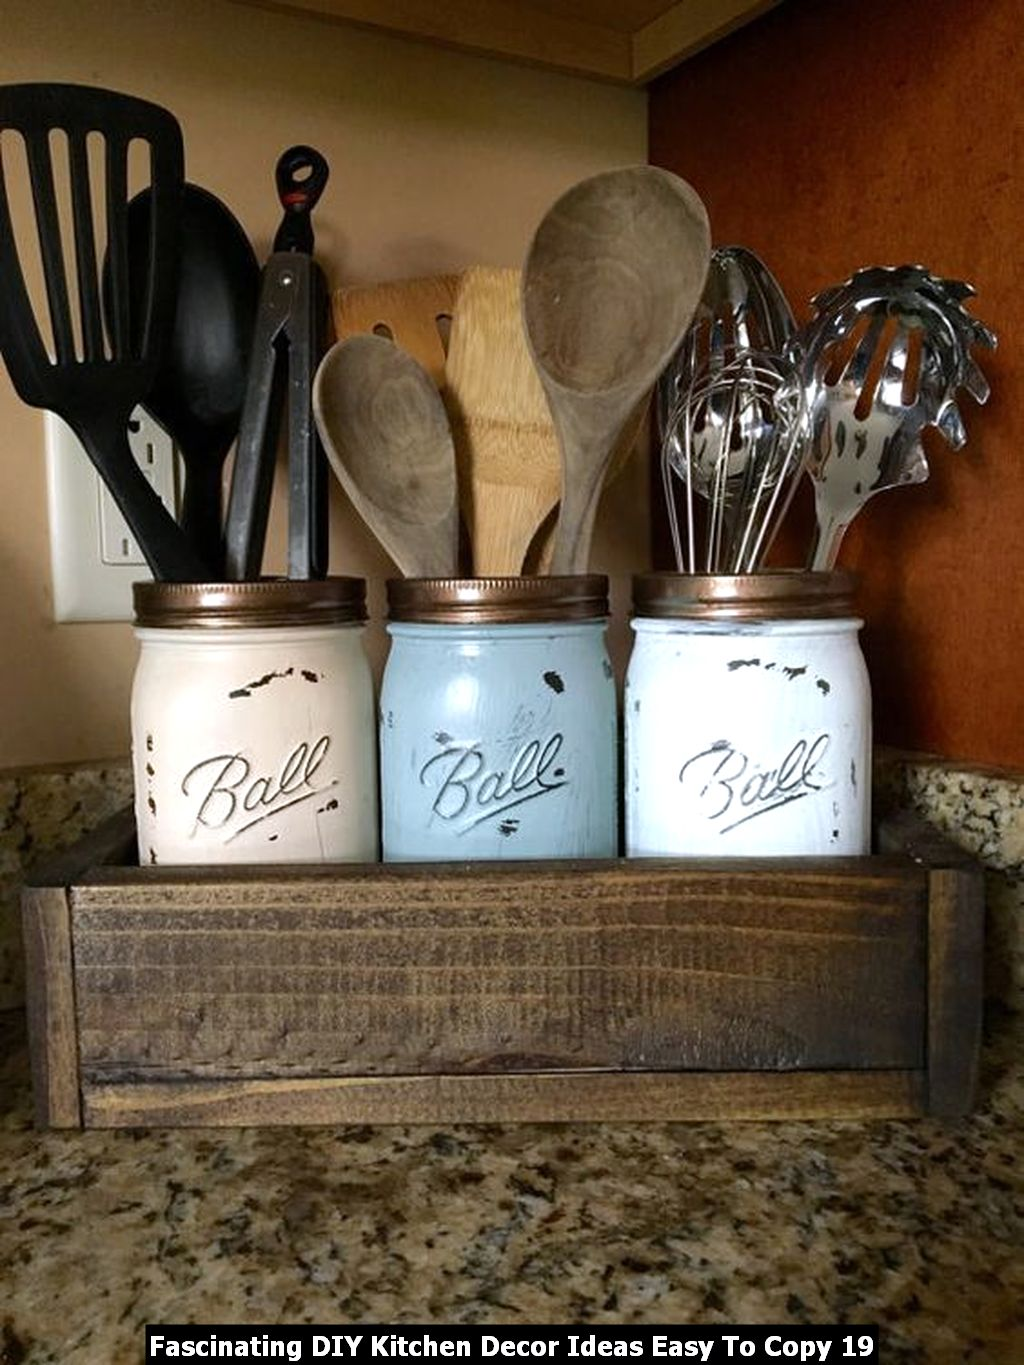 Fascinating DIY Kitchen Decor Ideas Easy To Copy 19